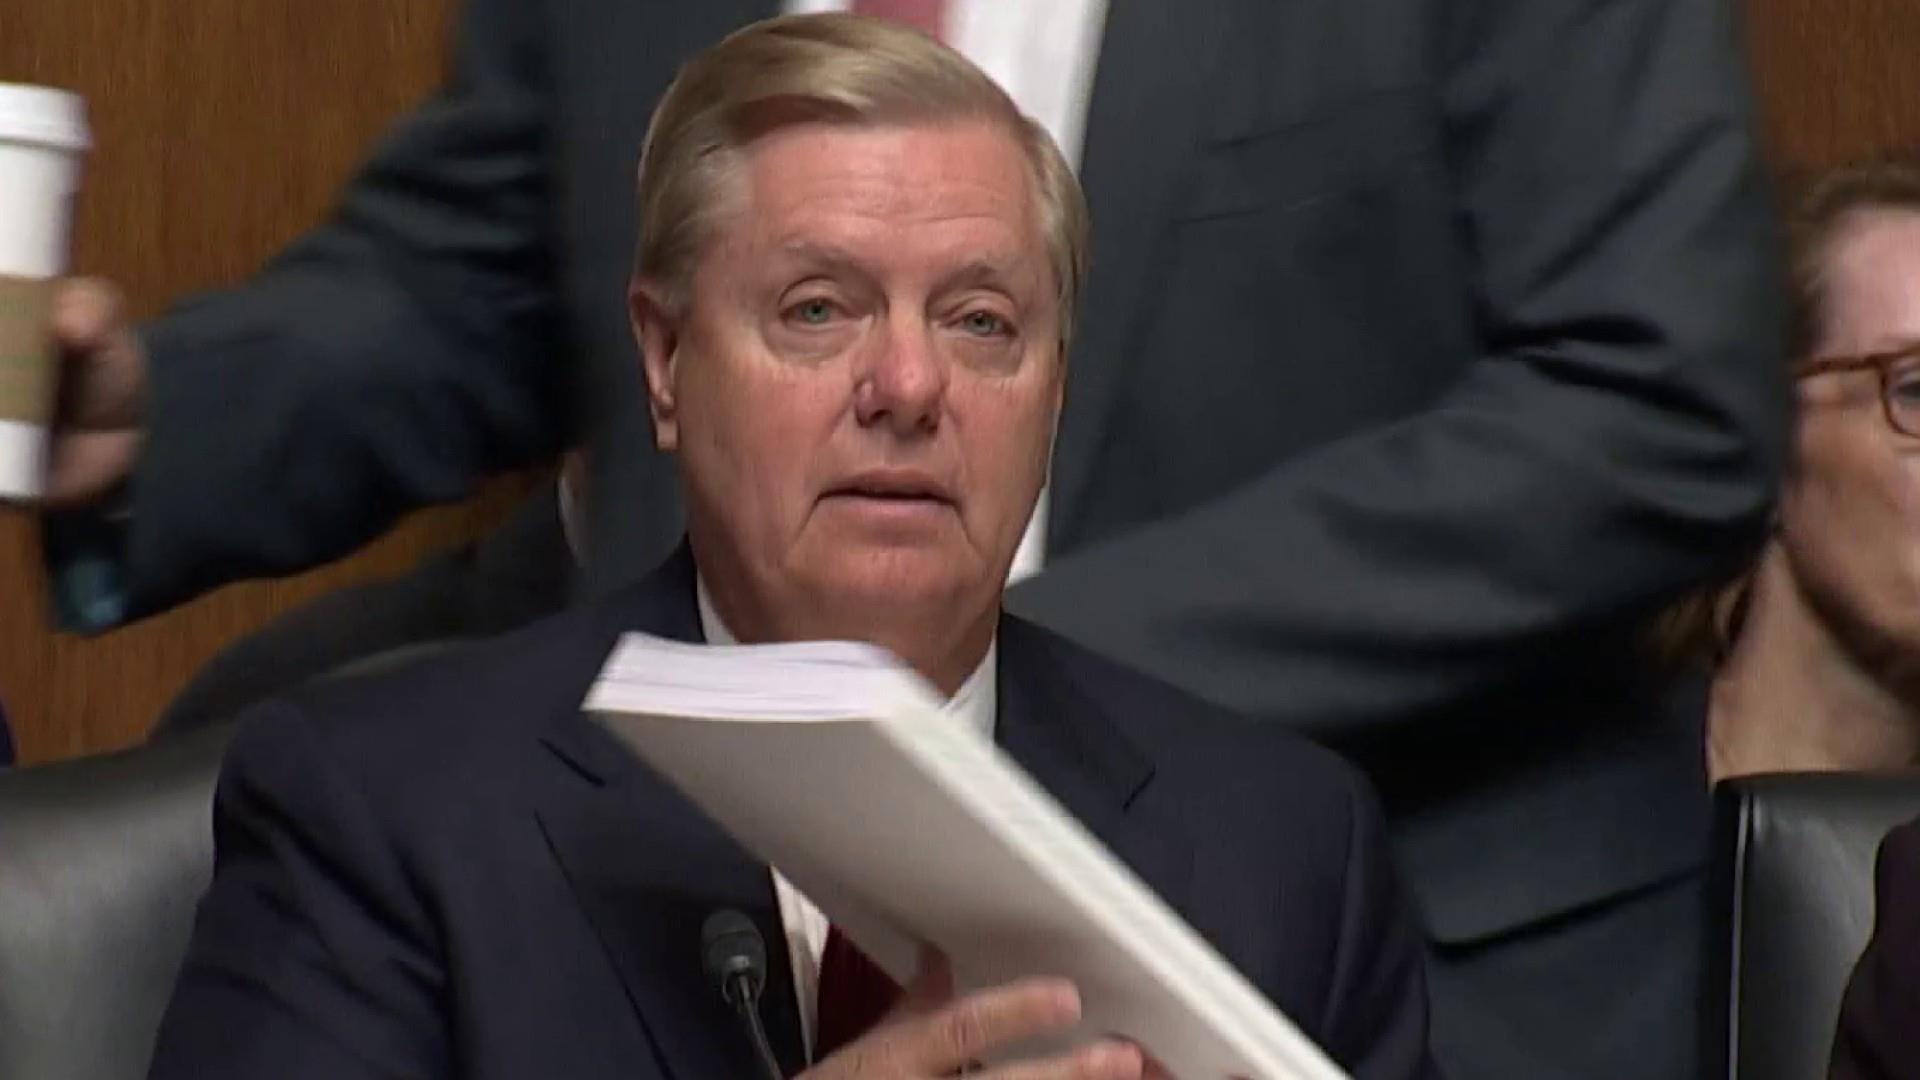 Sen. Graham falsely says Mueller found 'no collusion' before Barr testimony